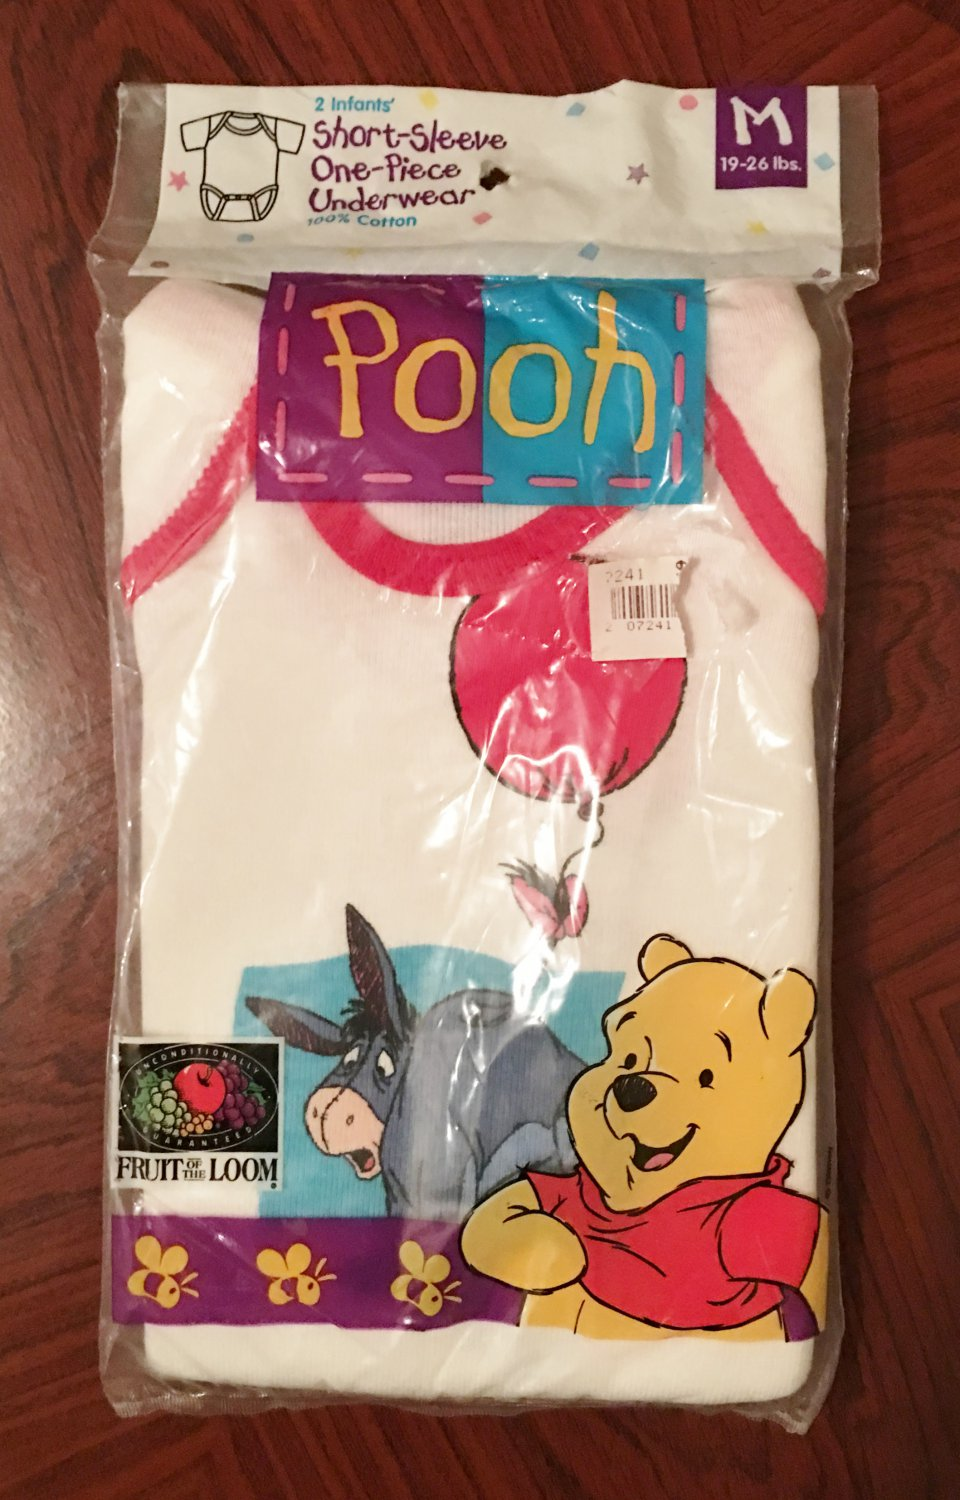 NWT Baby WINNIE the POOH Eeyore Infant One Piece Bodysuits MEDIUM 100% Cotton 2 PACK